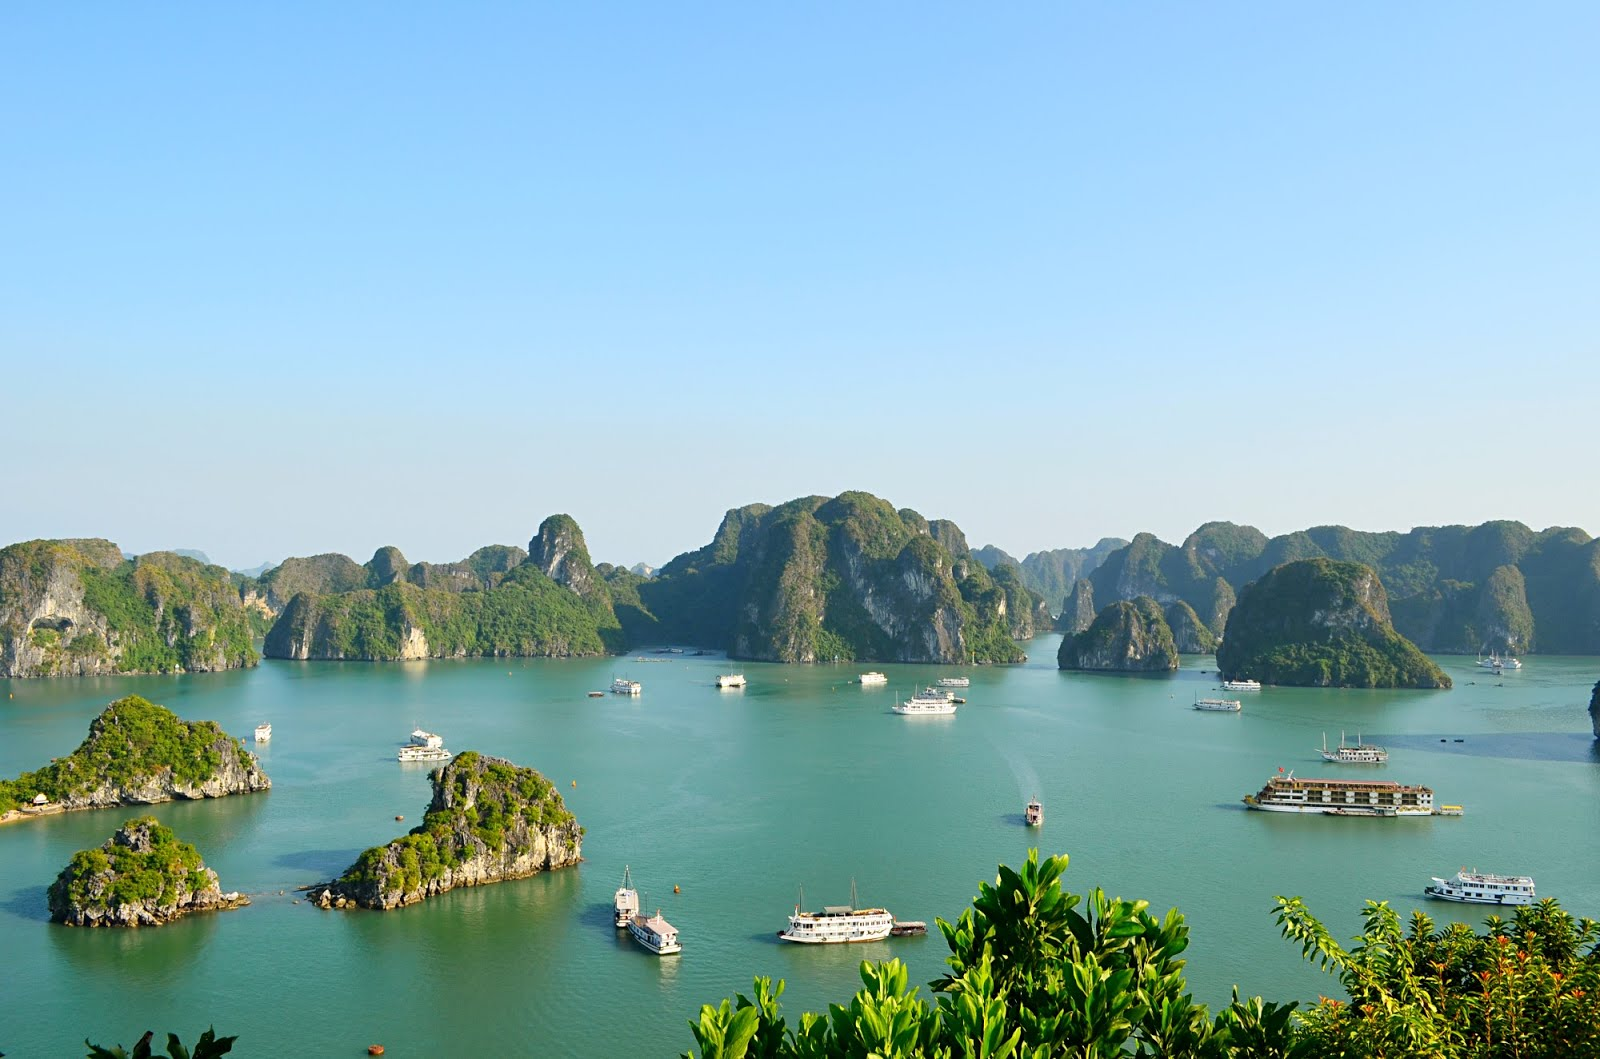 ha long bay essay Visiting halong bay, you will not only have the chance to watch the beautiful and epic scenes, but also experience the interesting things especially, visitors will be impressed with the night squid fishing in halong bay – an attractive activity bringing many exciting experiences.